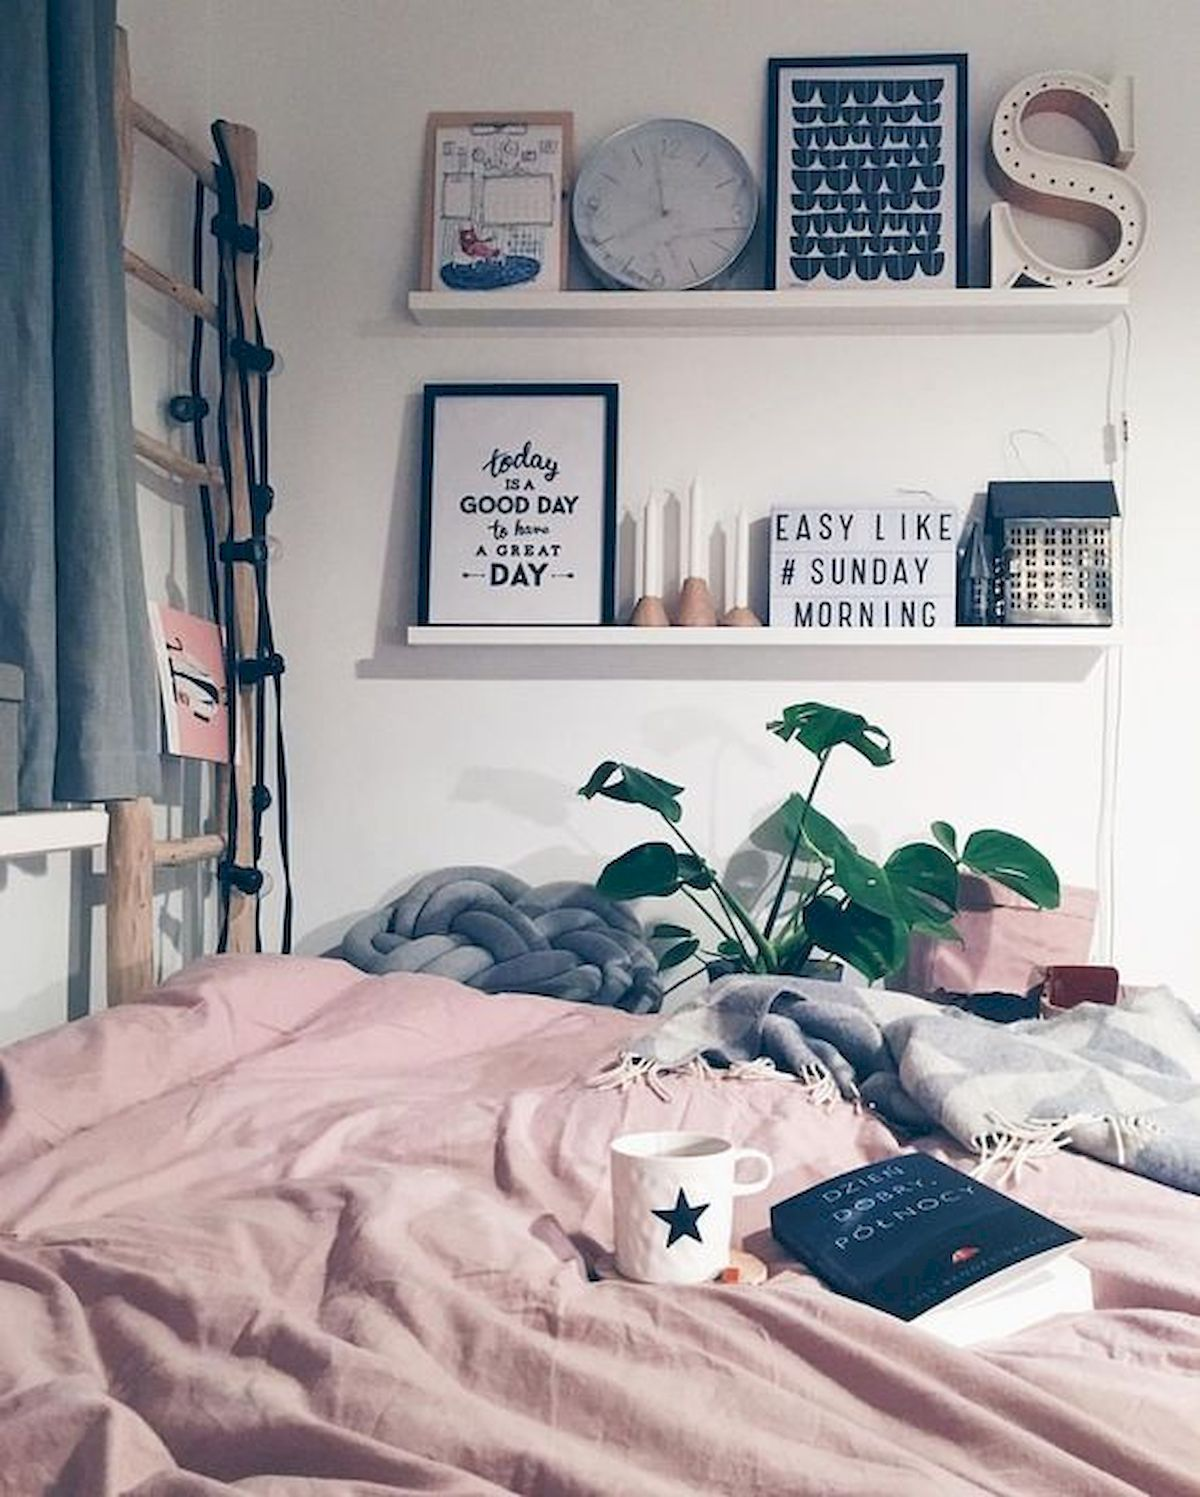 College Home Decor: 33 Awesome College Bedroom Decor Ideas And Remodel